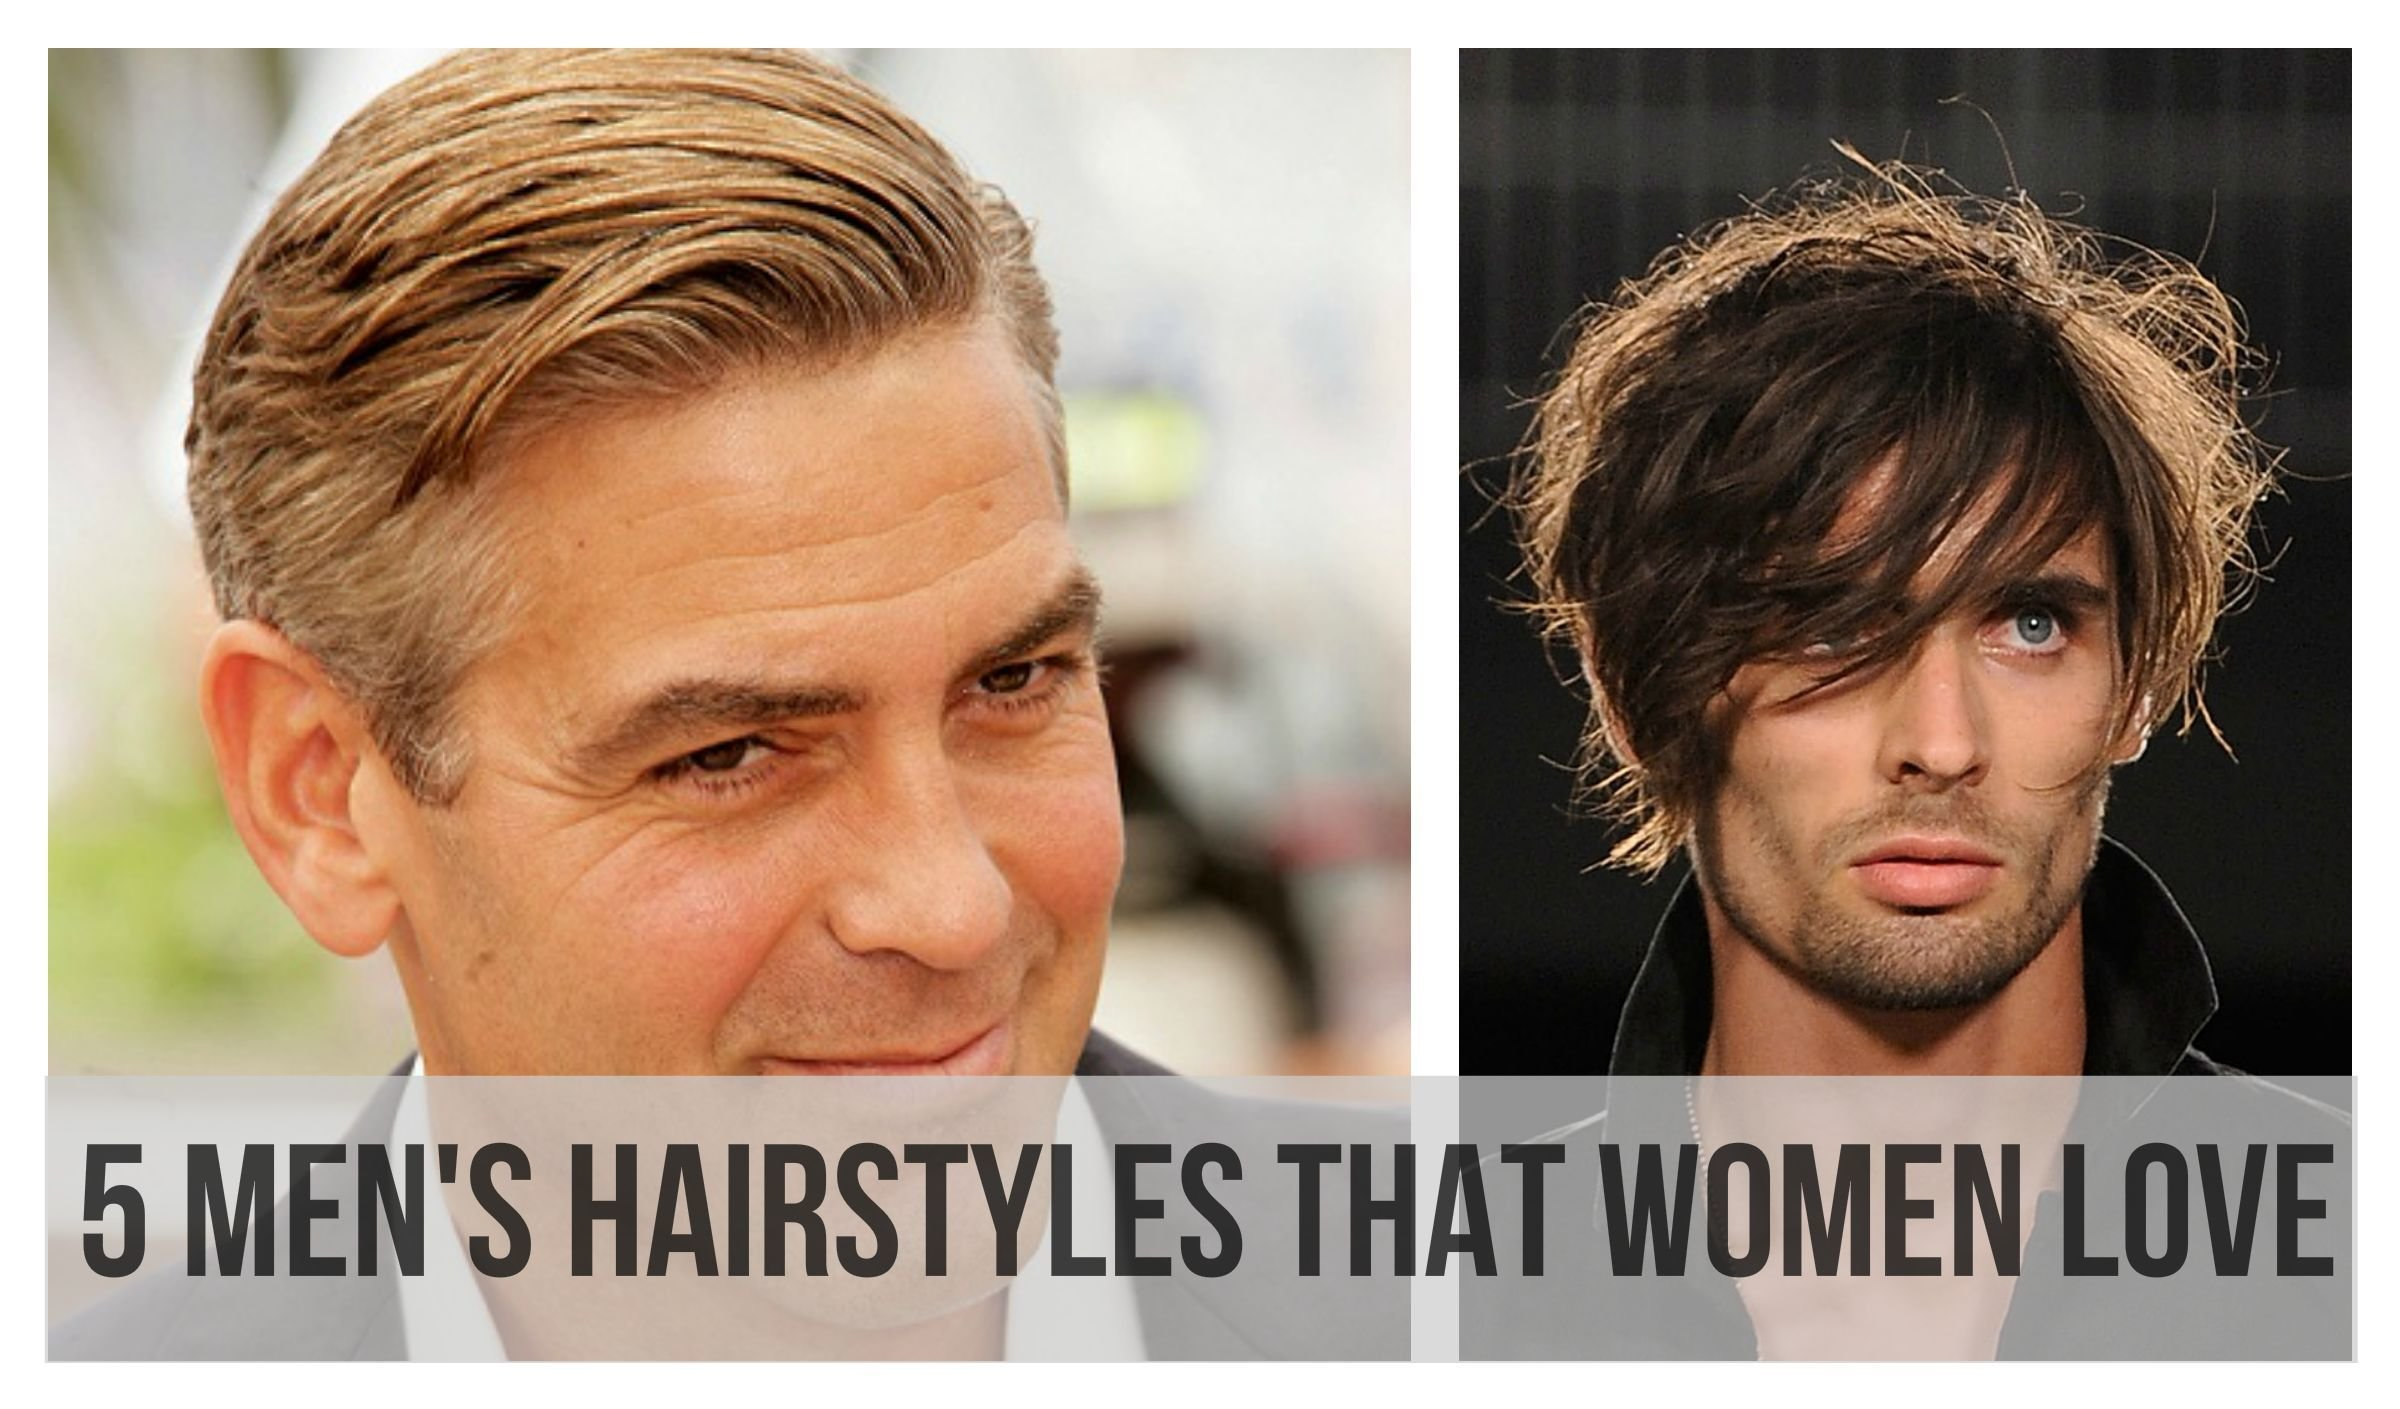 The Best 5 Men's Hairstyles That Women Love 2 Is Our Favorite Pictures